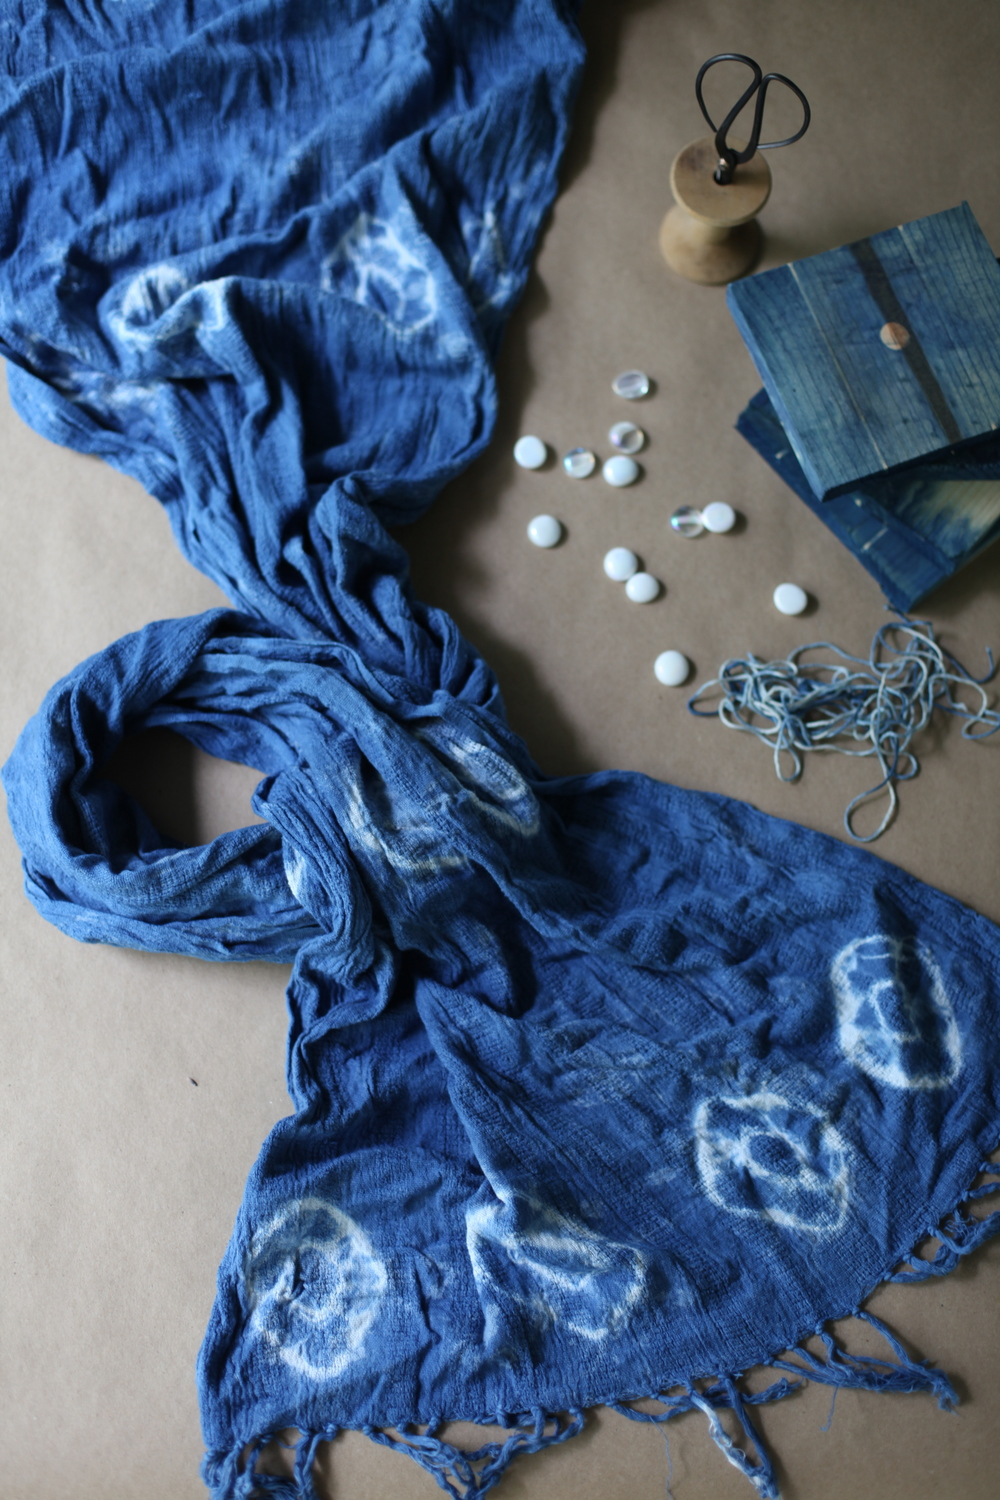 inks+thread shibori dyed indigo scarf